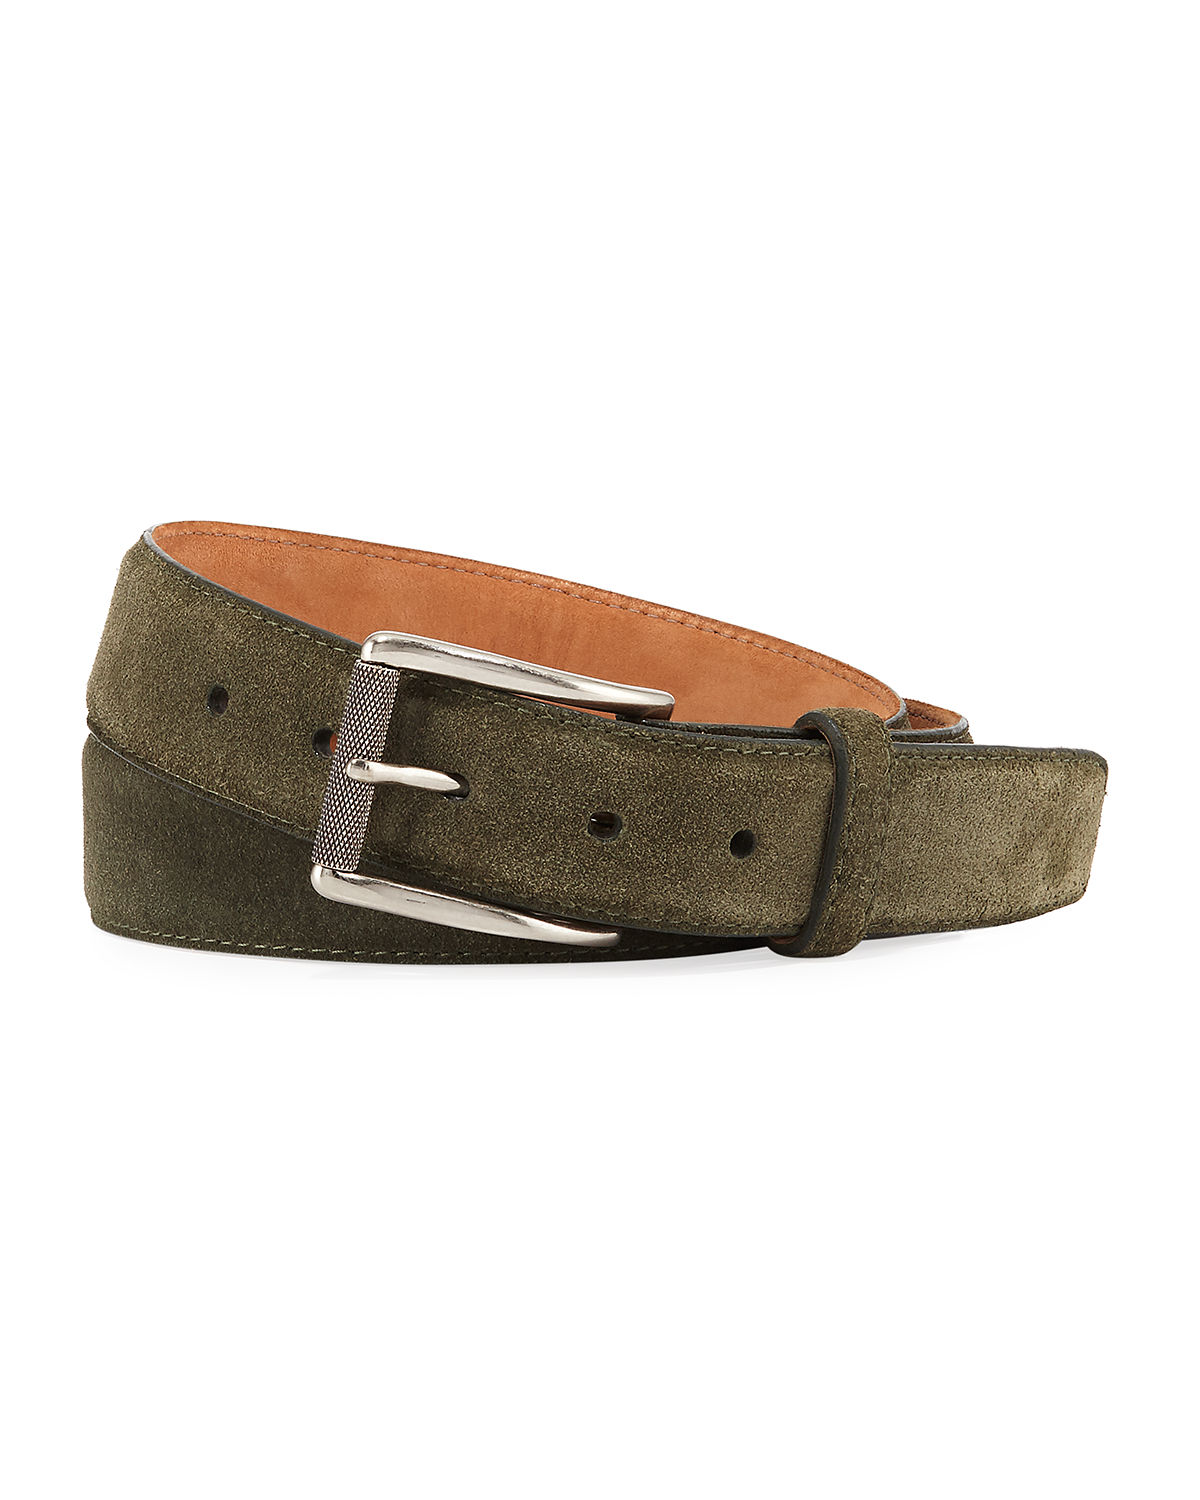 Men's Suede Belt